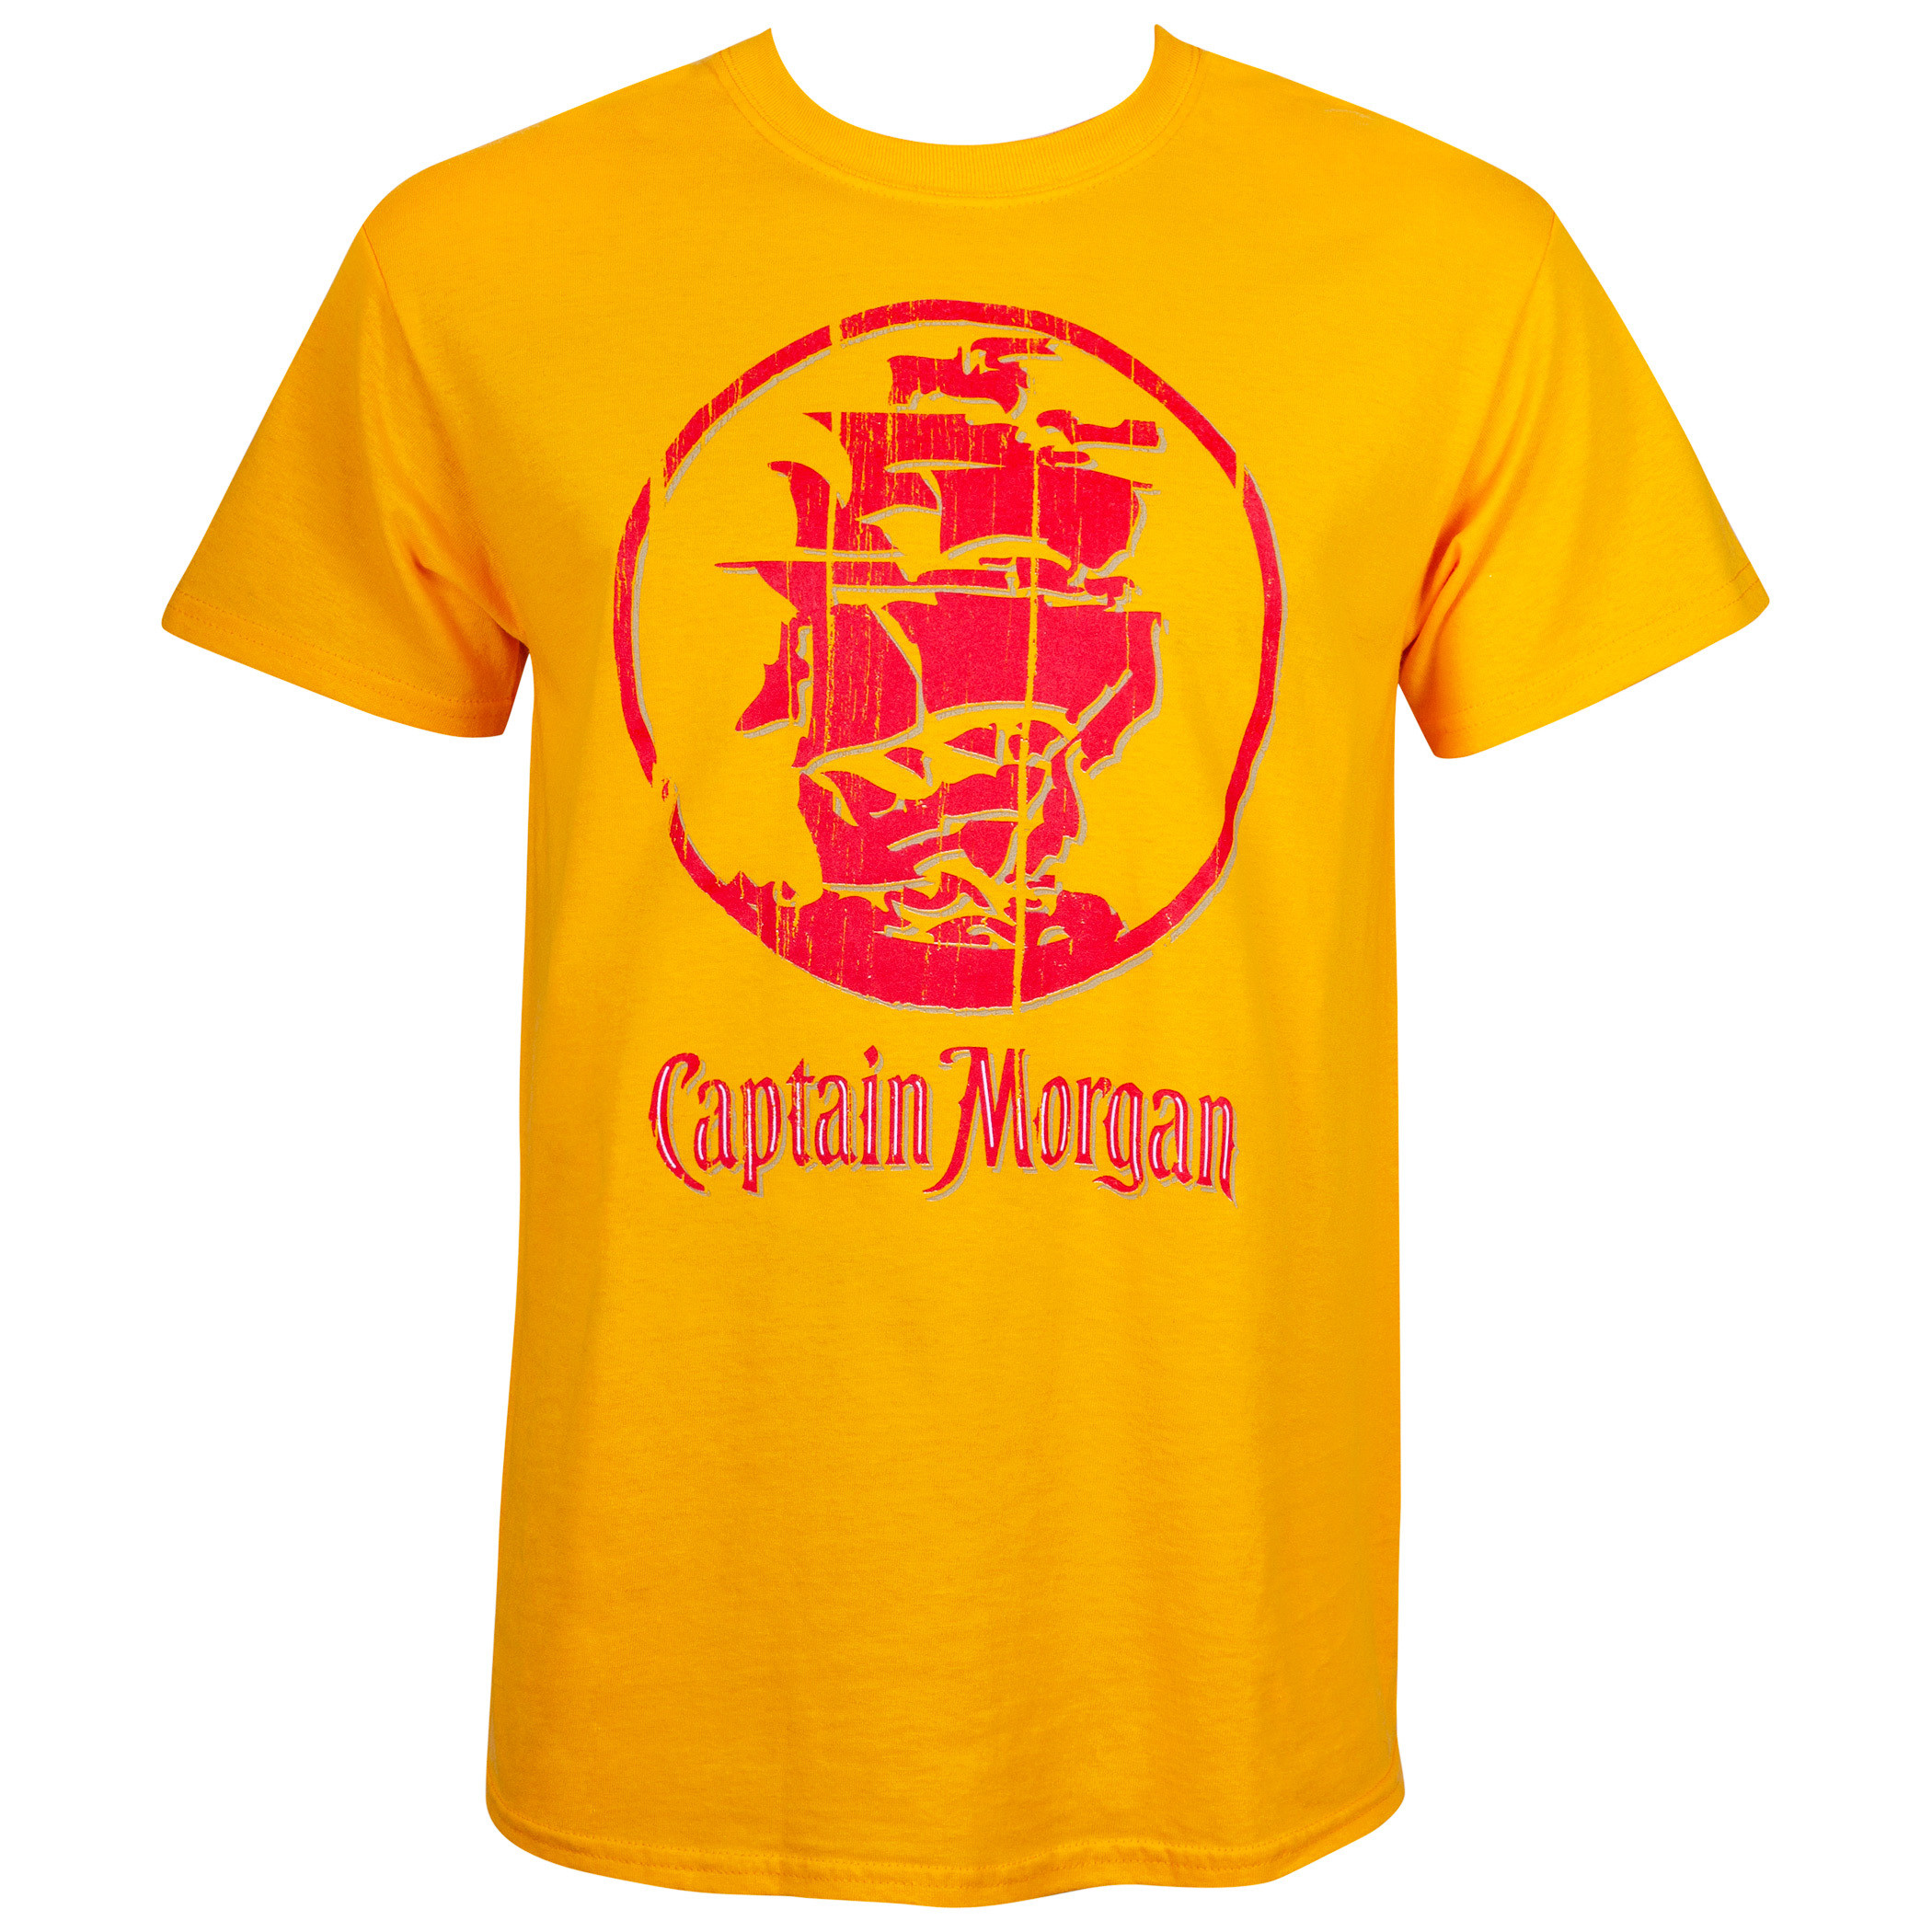 Captain Morgan Gold Ship Logo Tee Shirt